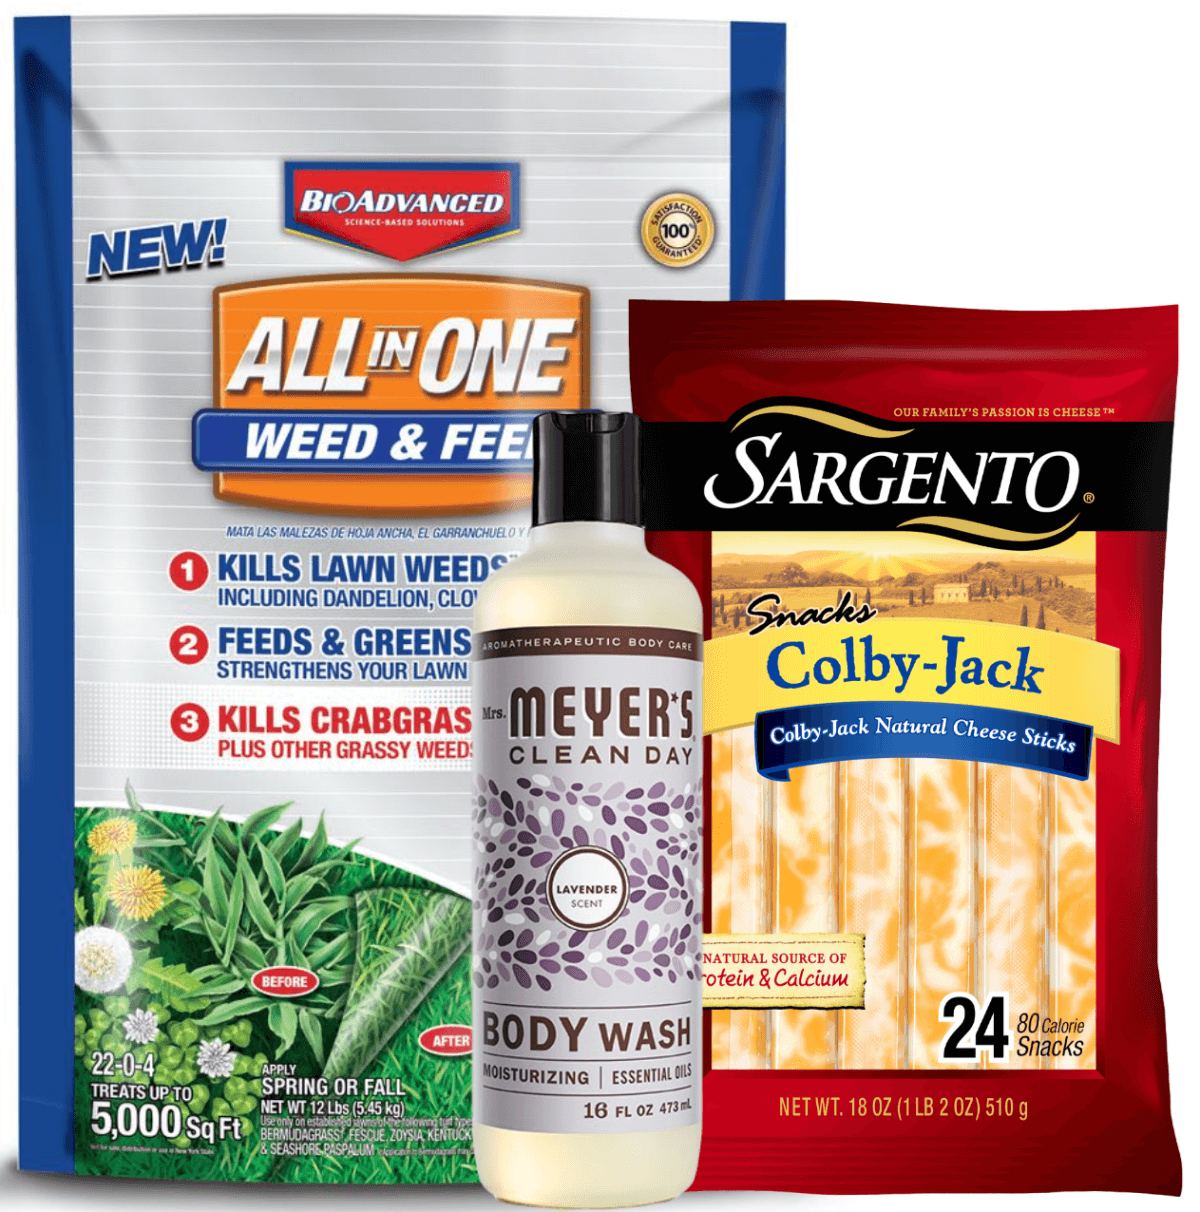 image relating to Carol's Daughter Printable Coupons known as Todays Final Fresh Coupon codes - Help you save upon Sargento, Carols Daughter